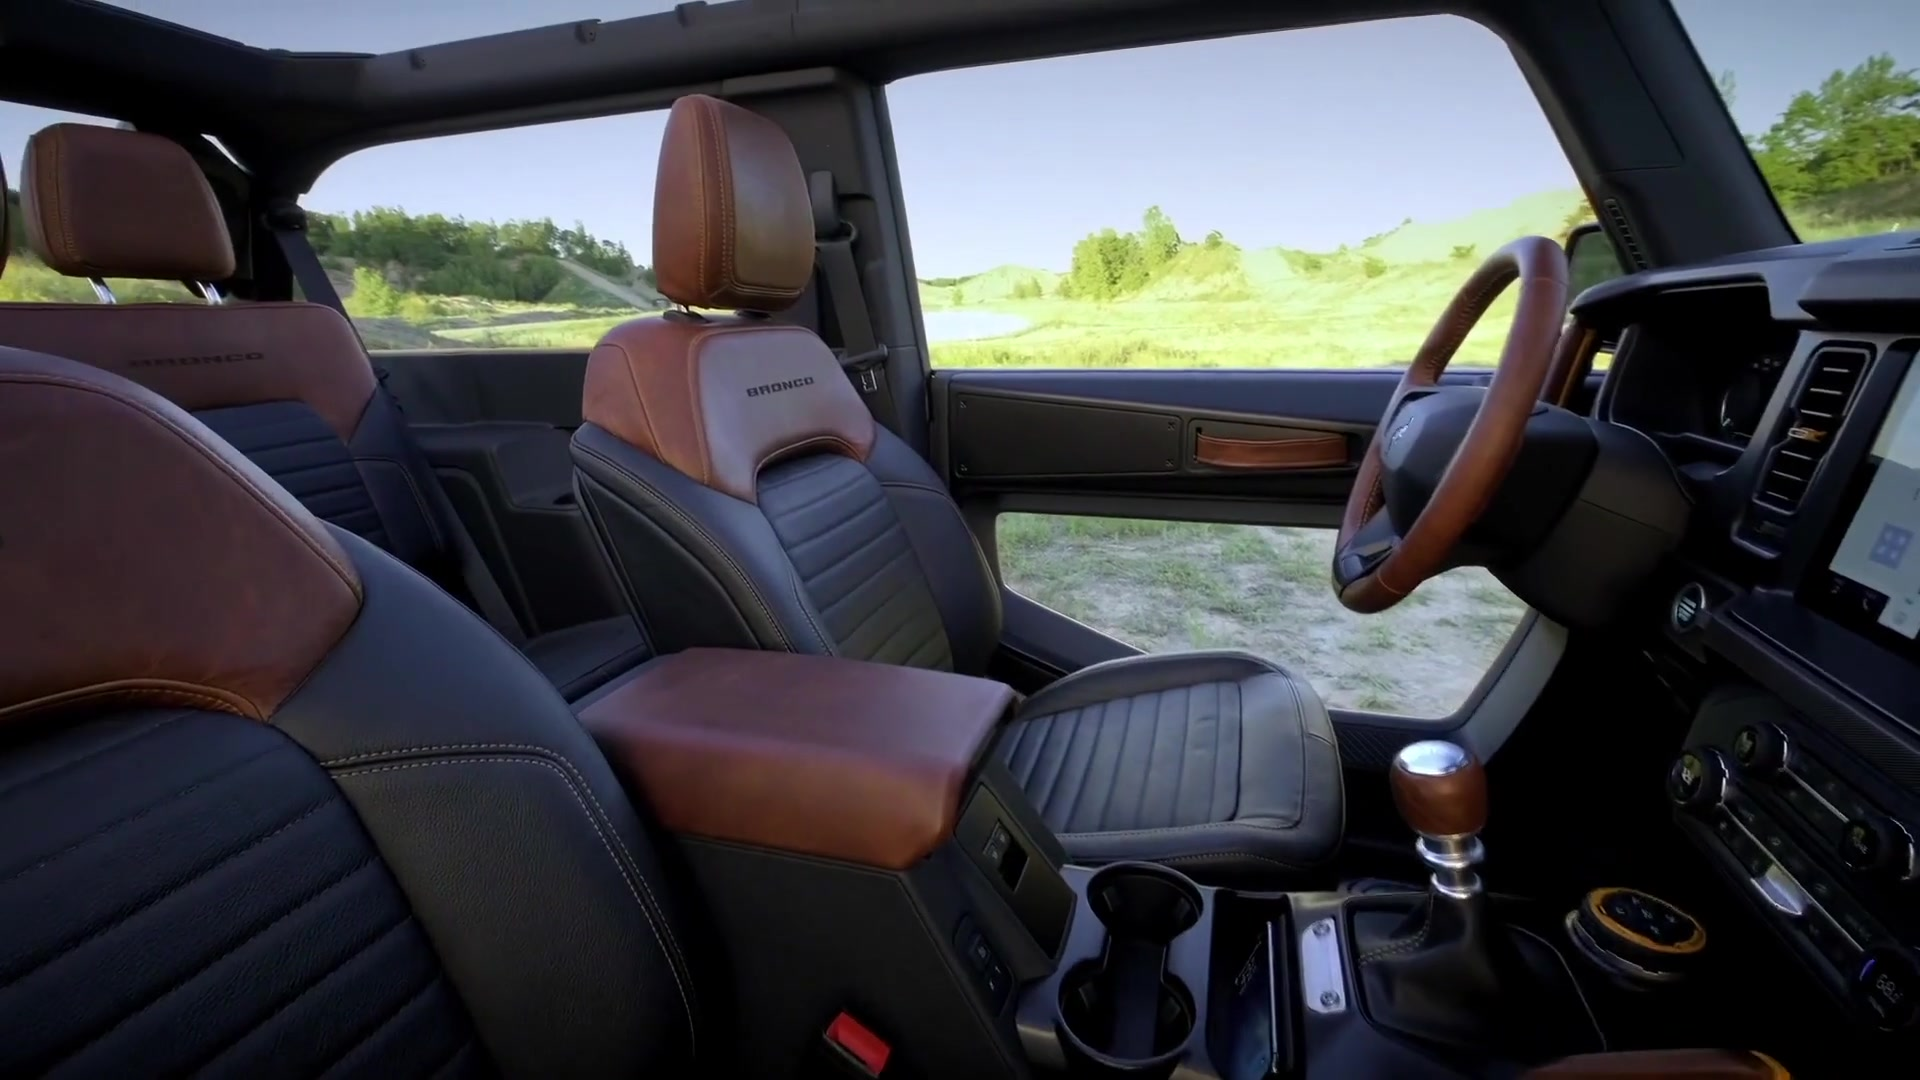 All-new 2021 Ford Bronco two-door and four-door Interior Design